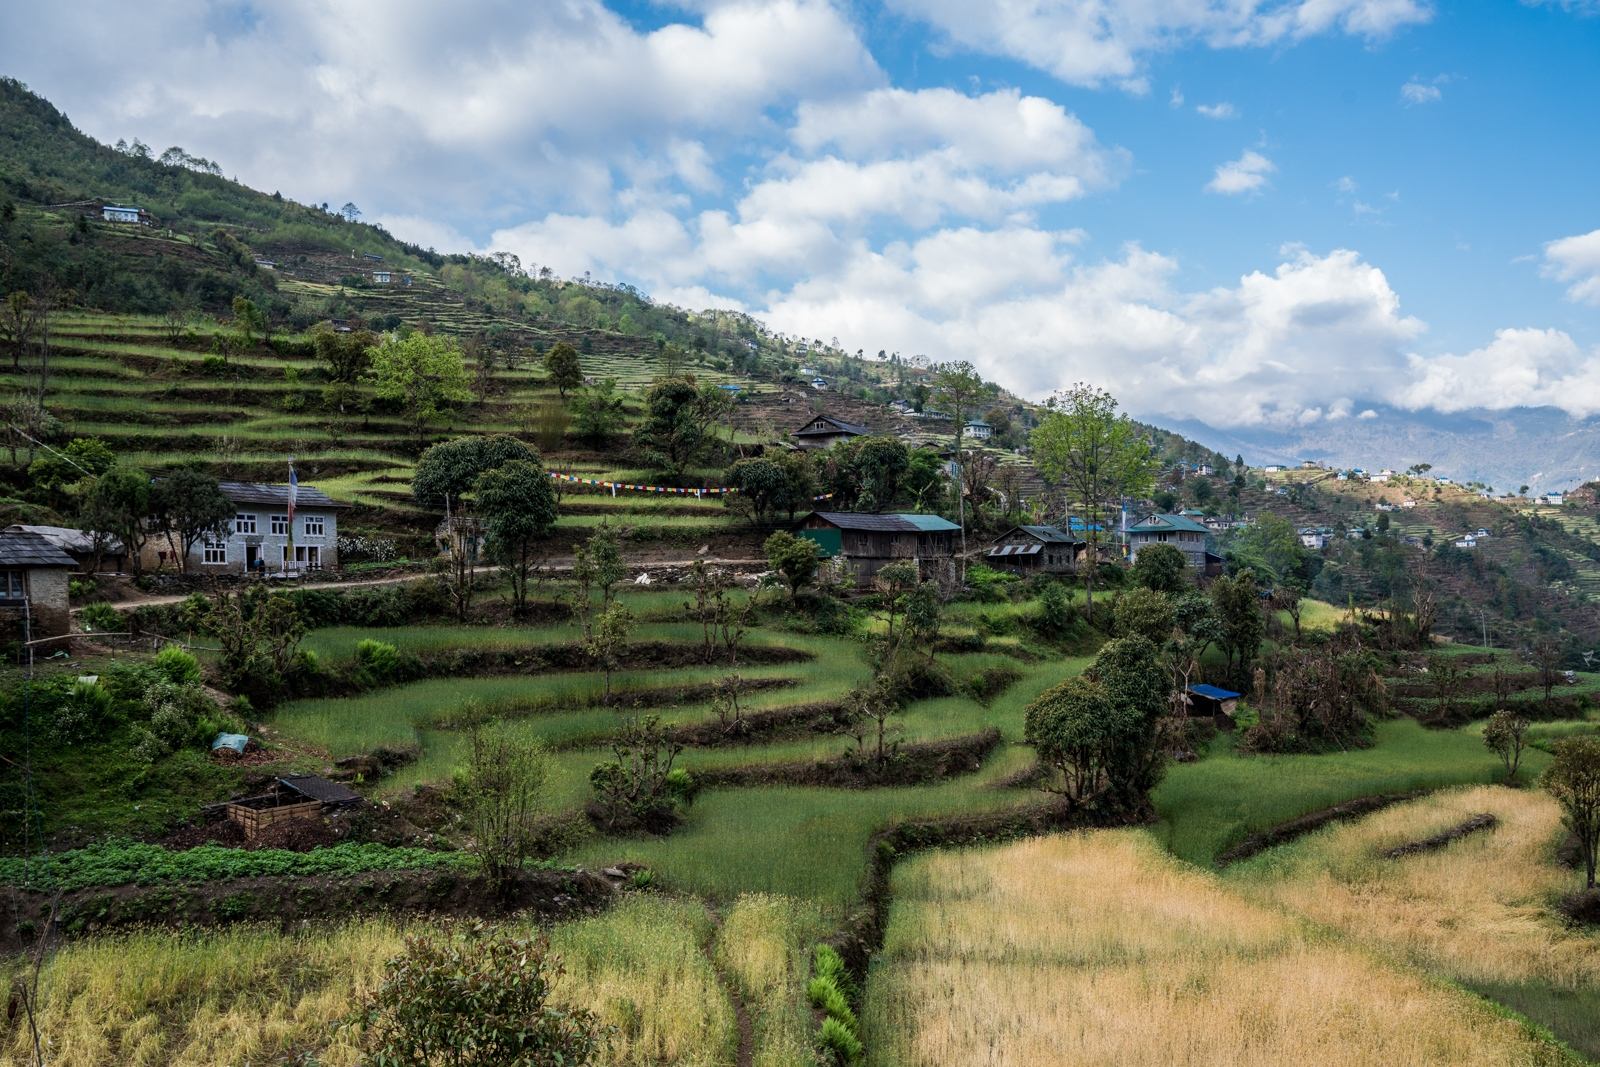 The village of Karikhola in the foothills of the Nepali Himalaya.